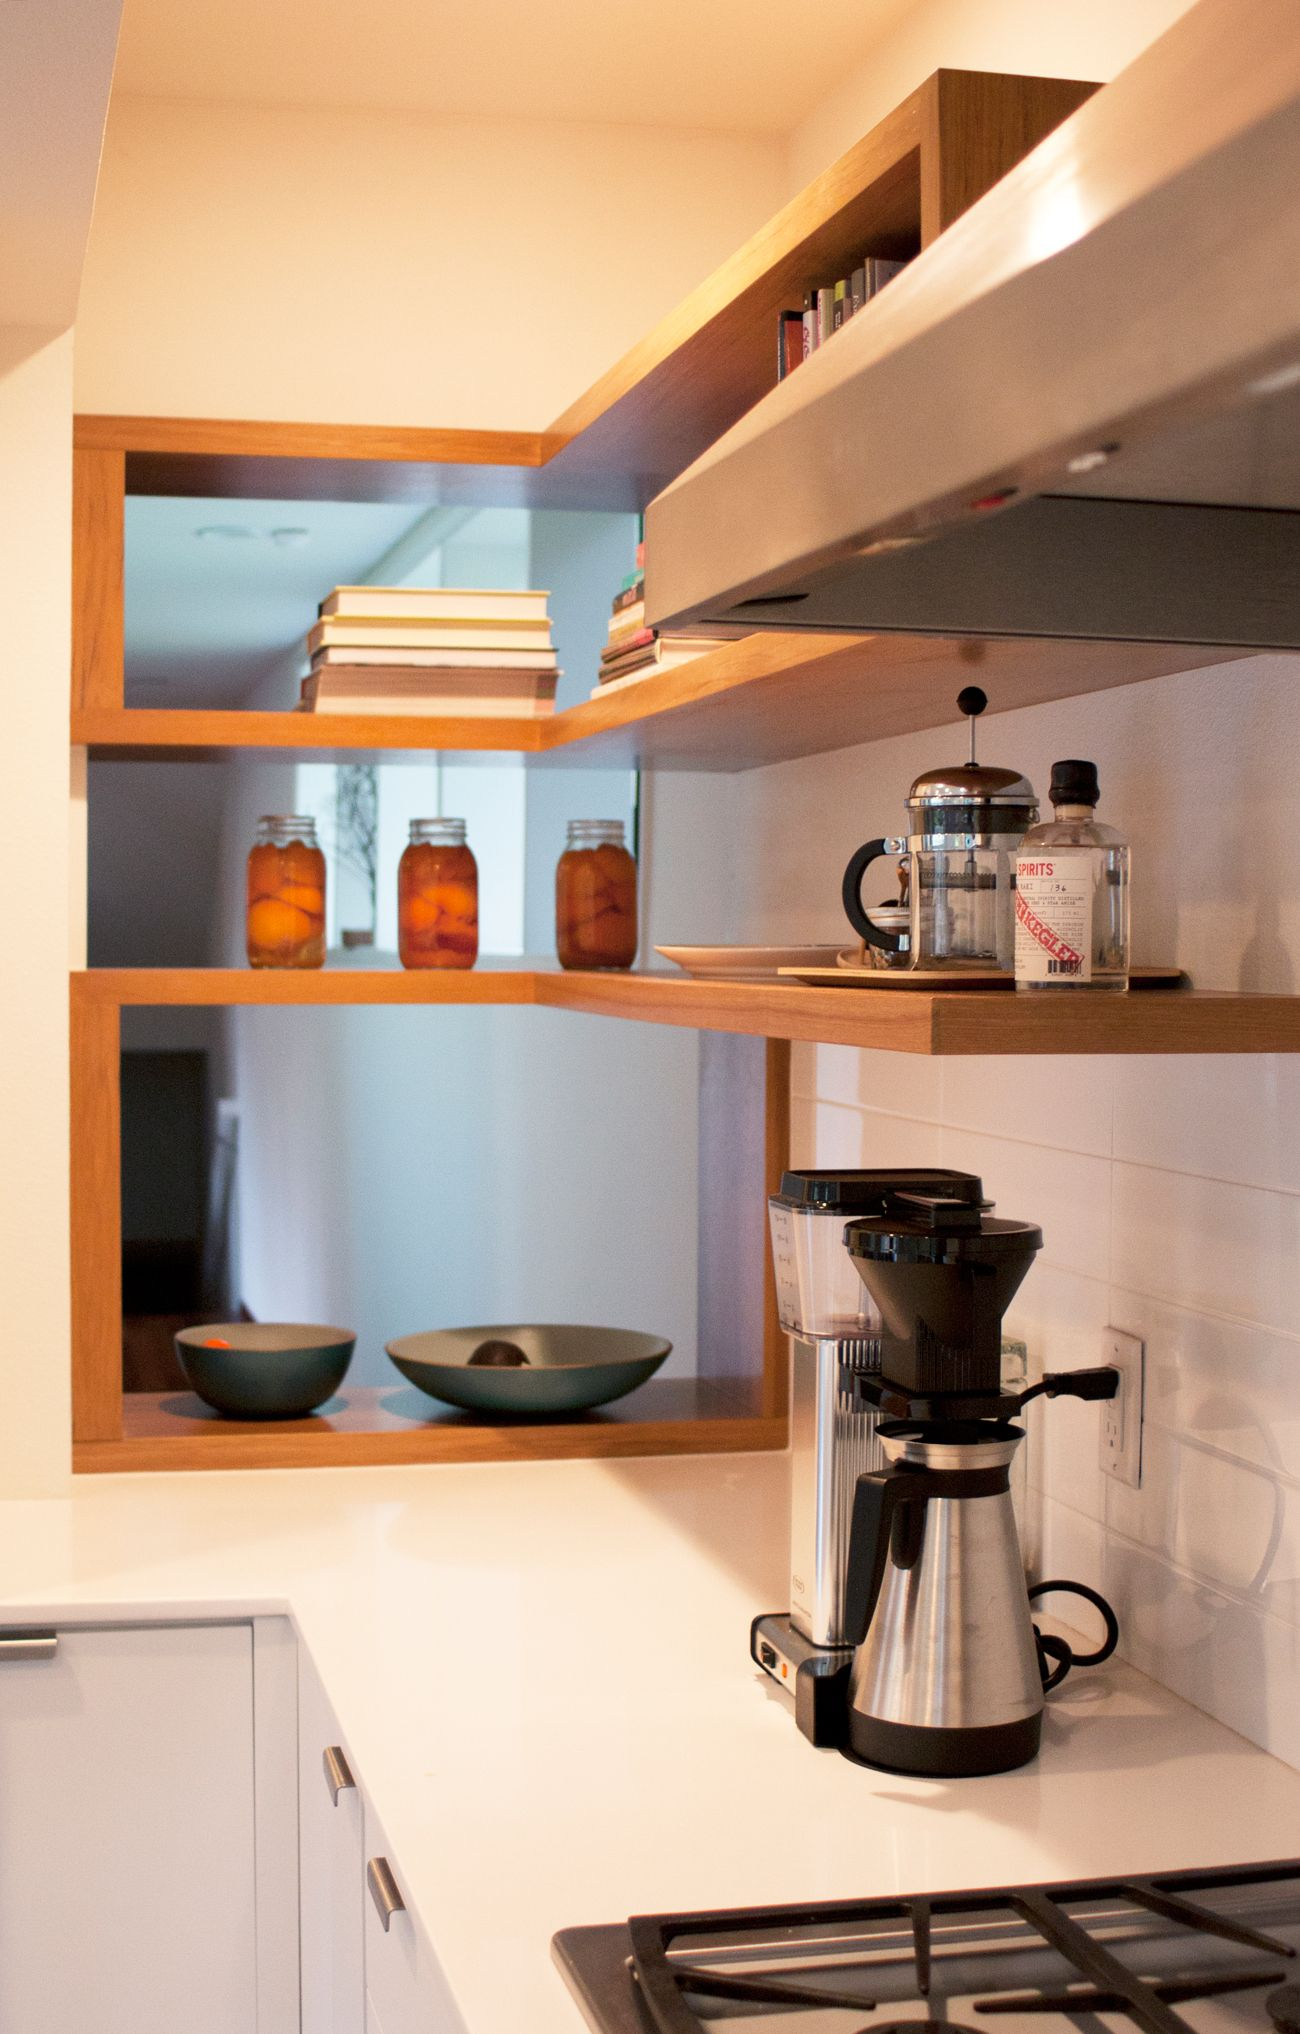 Modern kitchen shelves - Open Shelves In Modern Kitchen Designed By Bright Designlab And Built By Hammer Hand